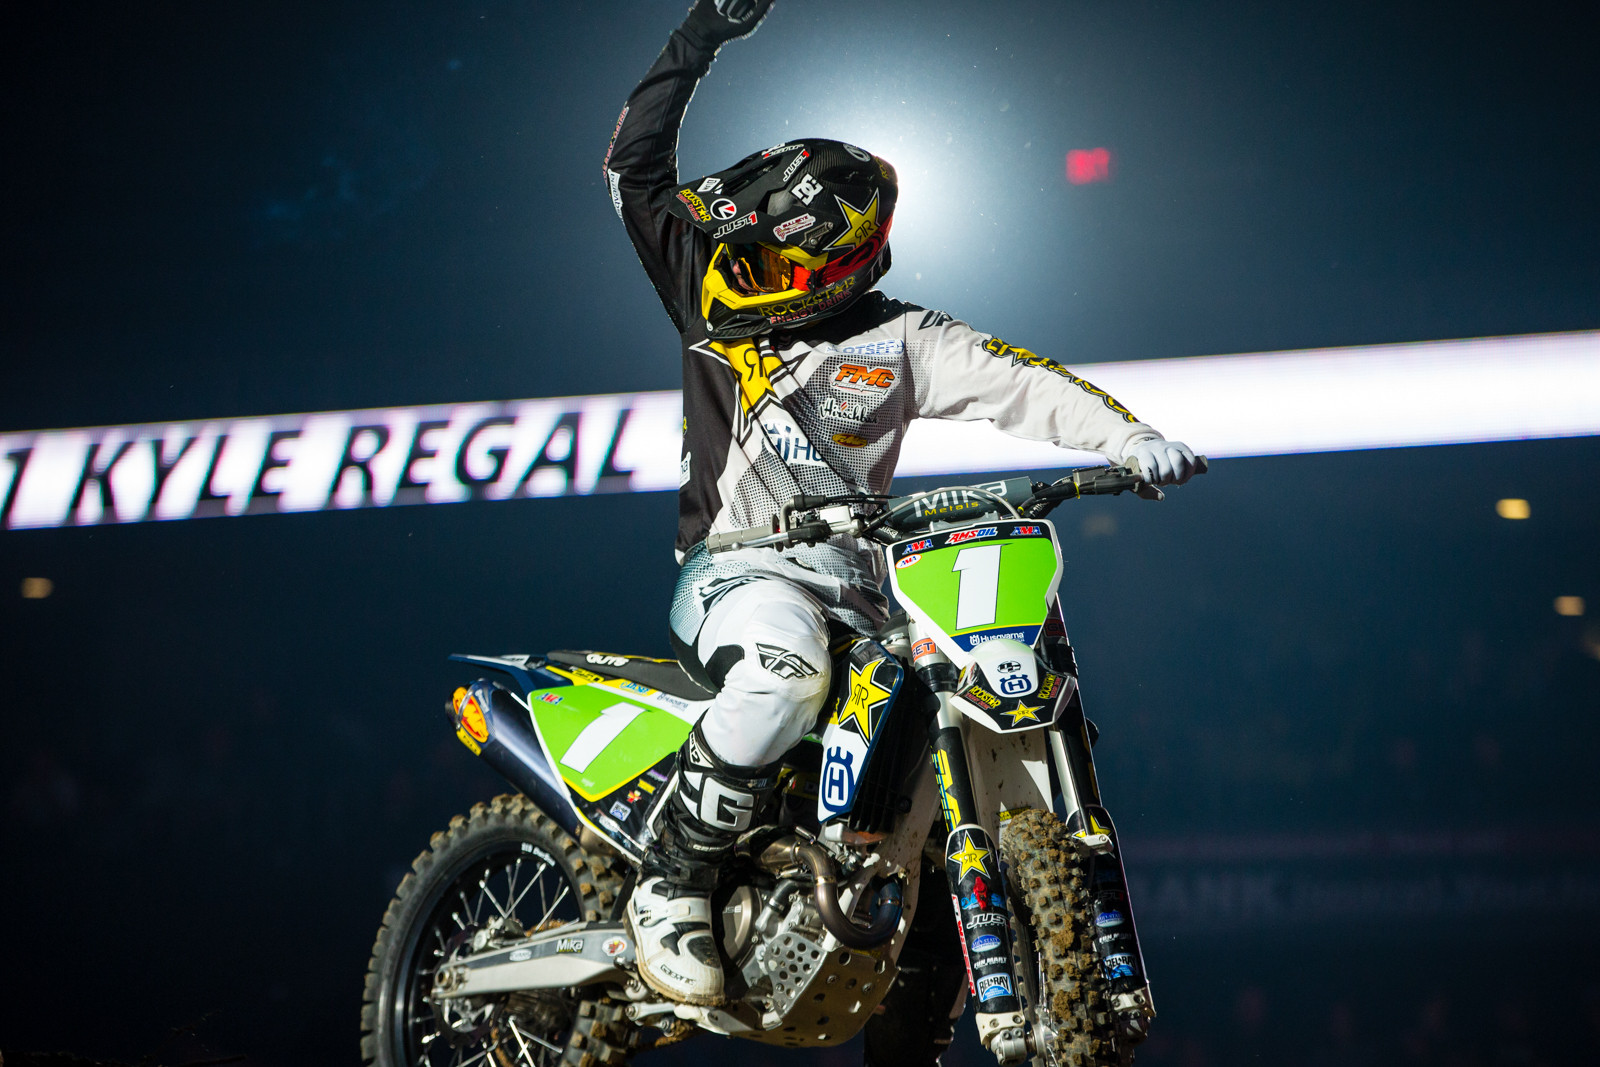 Kyle Regal - Photo Gallery: Ontario Arenacross - Friday Night - Motocross Pictures - Vital MX